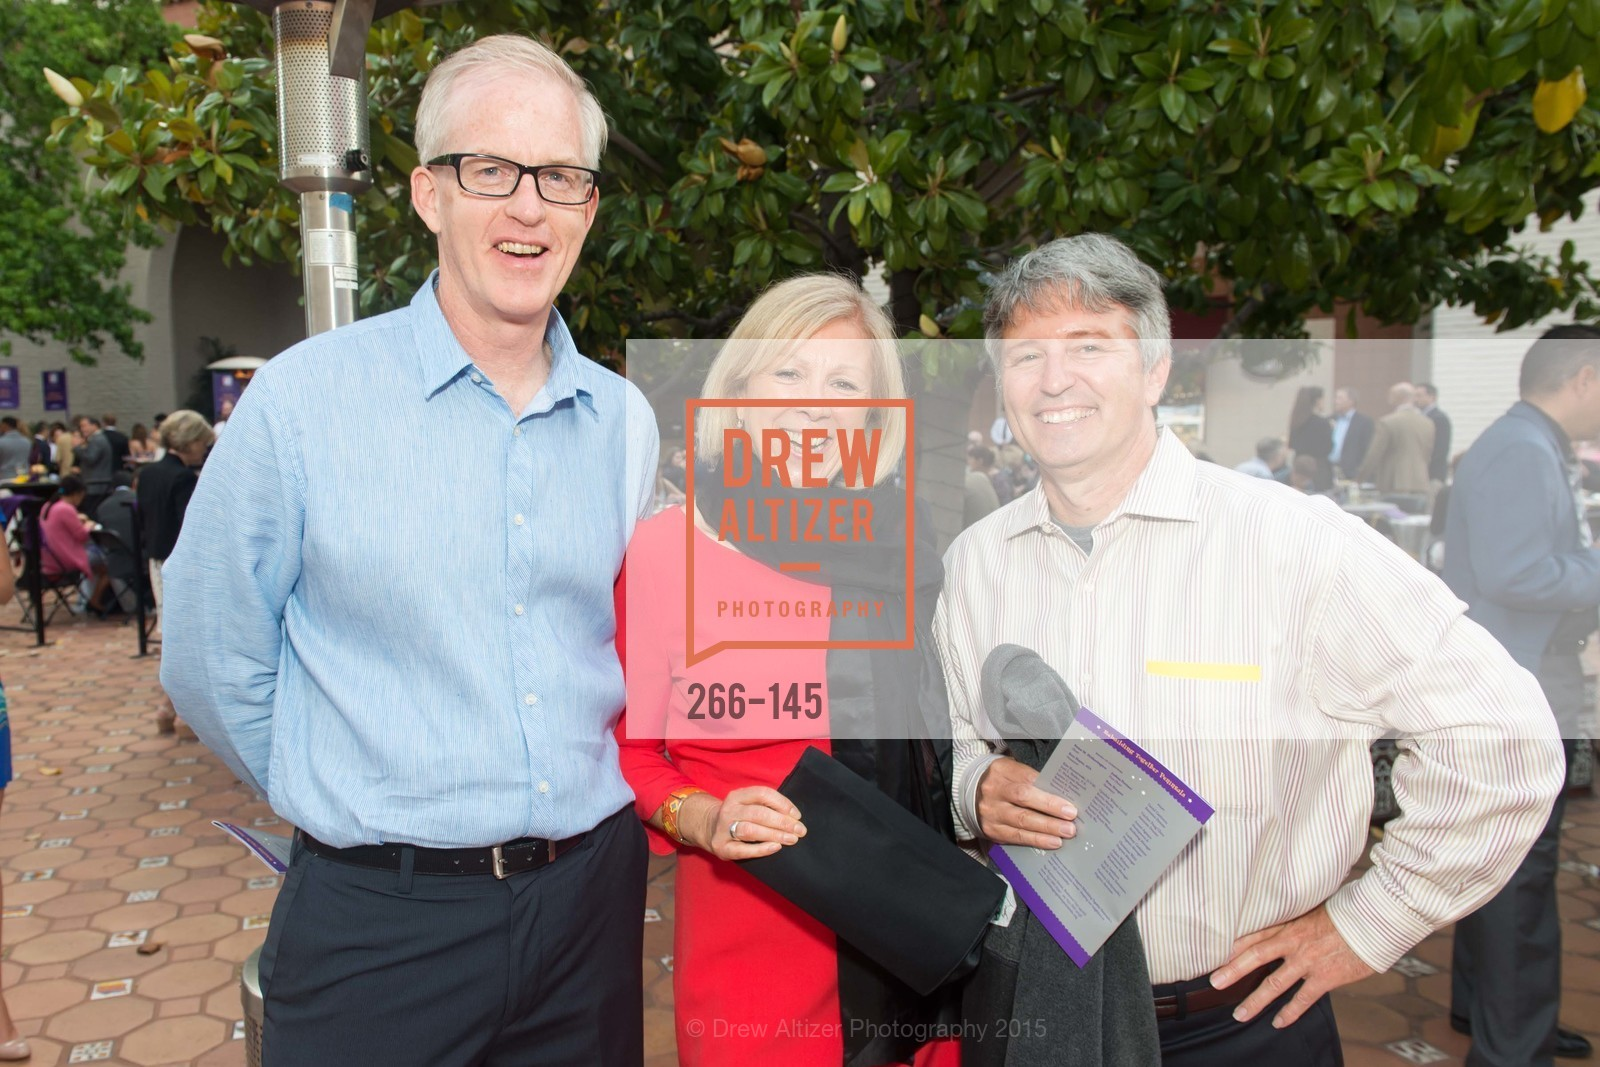 Don Onken, Quinn O'Hara, Stefan Gallegos, DREAMS HAPPEN: Playhouse Auction and Gala, Stanford Shopping Center, June 5th, 2015,Drew Altizer, Drew Altizer Photography, full-service agency, private events, San Francisco photographer, photographer california